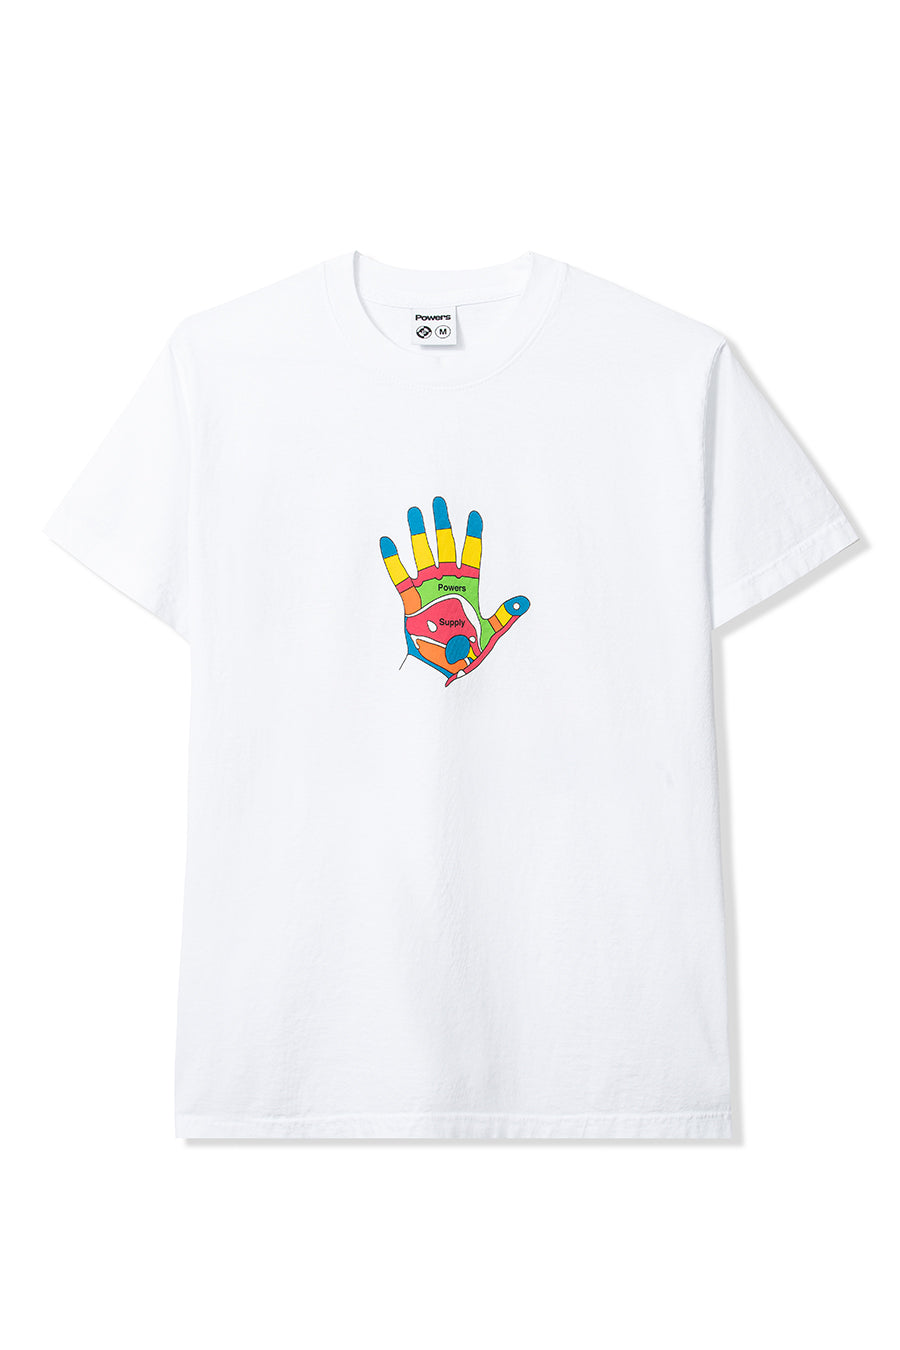 Powers Supply - White Reflexology T-Shirt